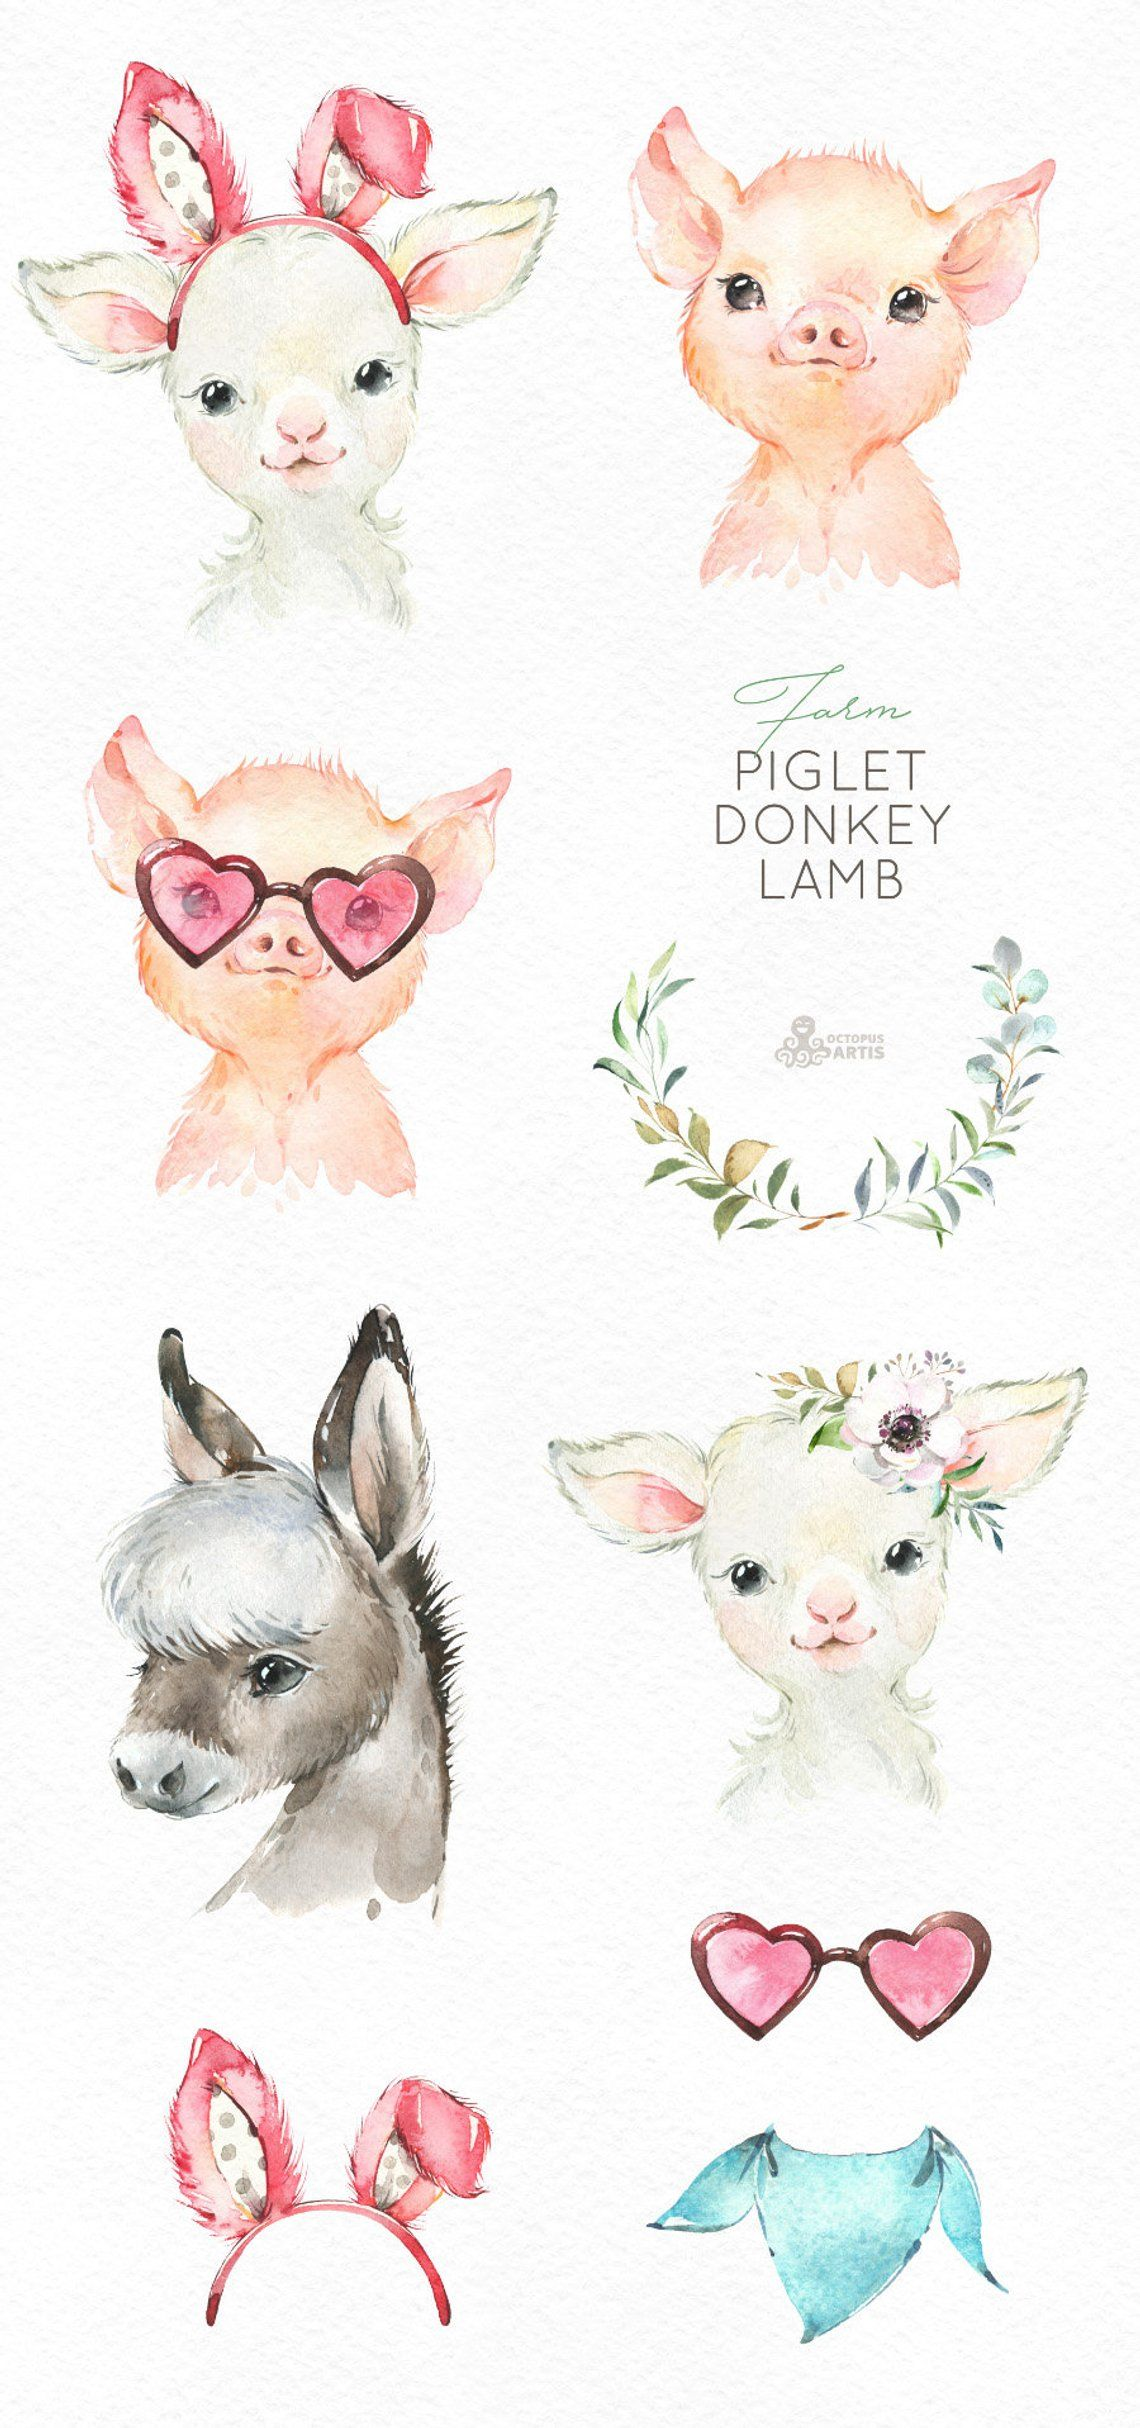 Farm Piglet Donkey Lamb. Watercolor little animals clipart.